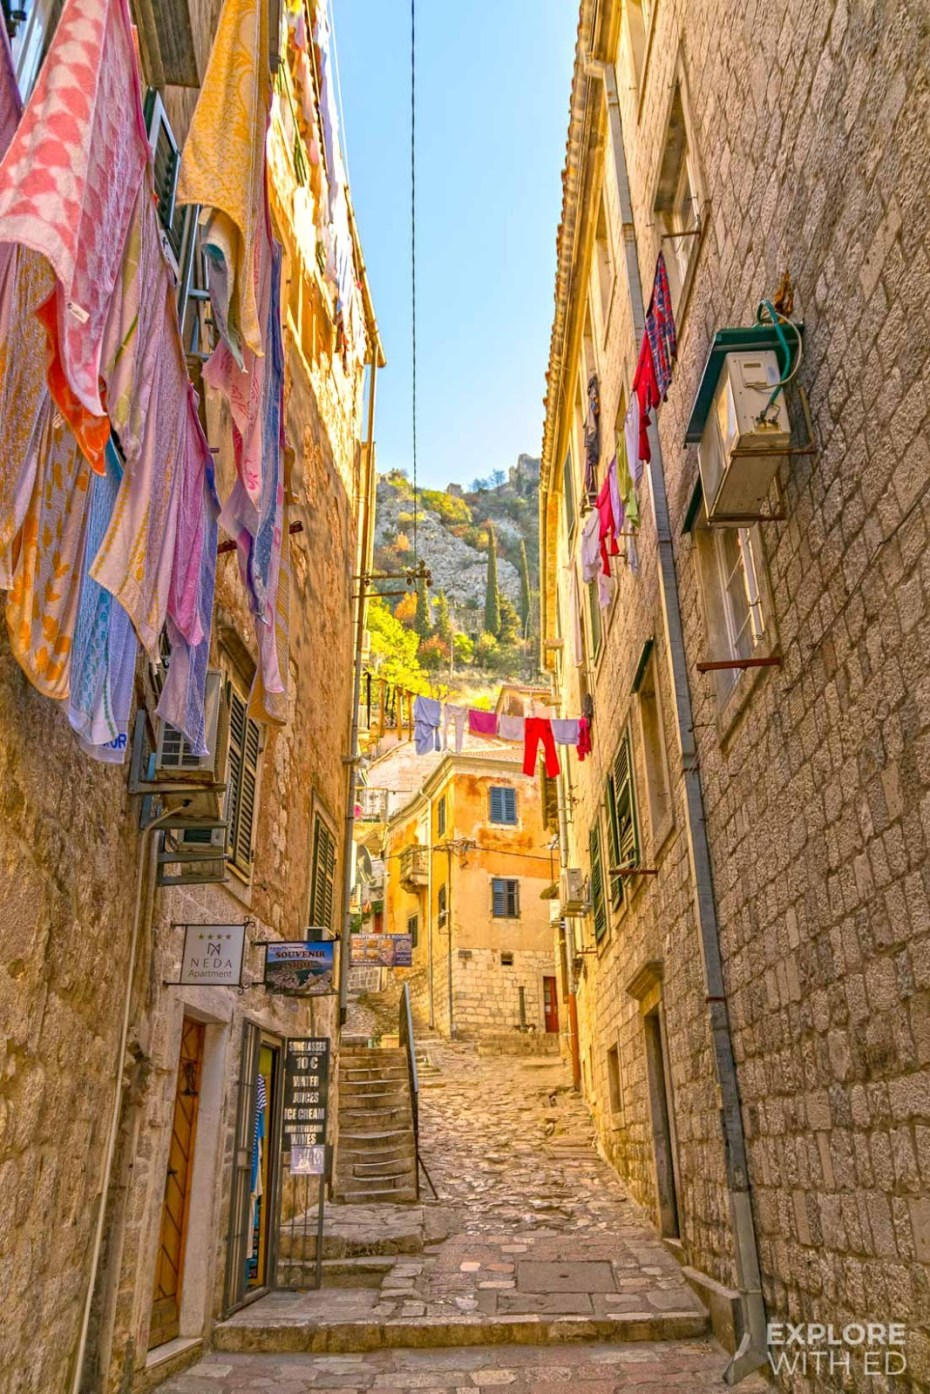 Medieval town of Kotor with narrow cobbled streets and old buildings